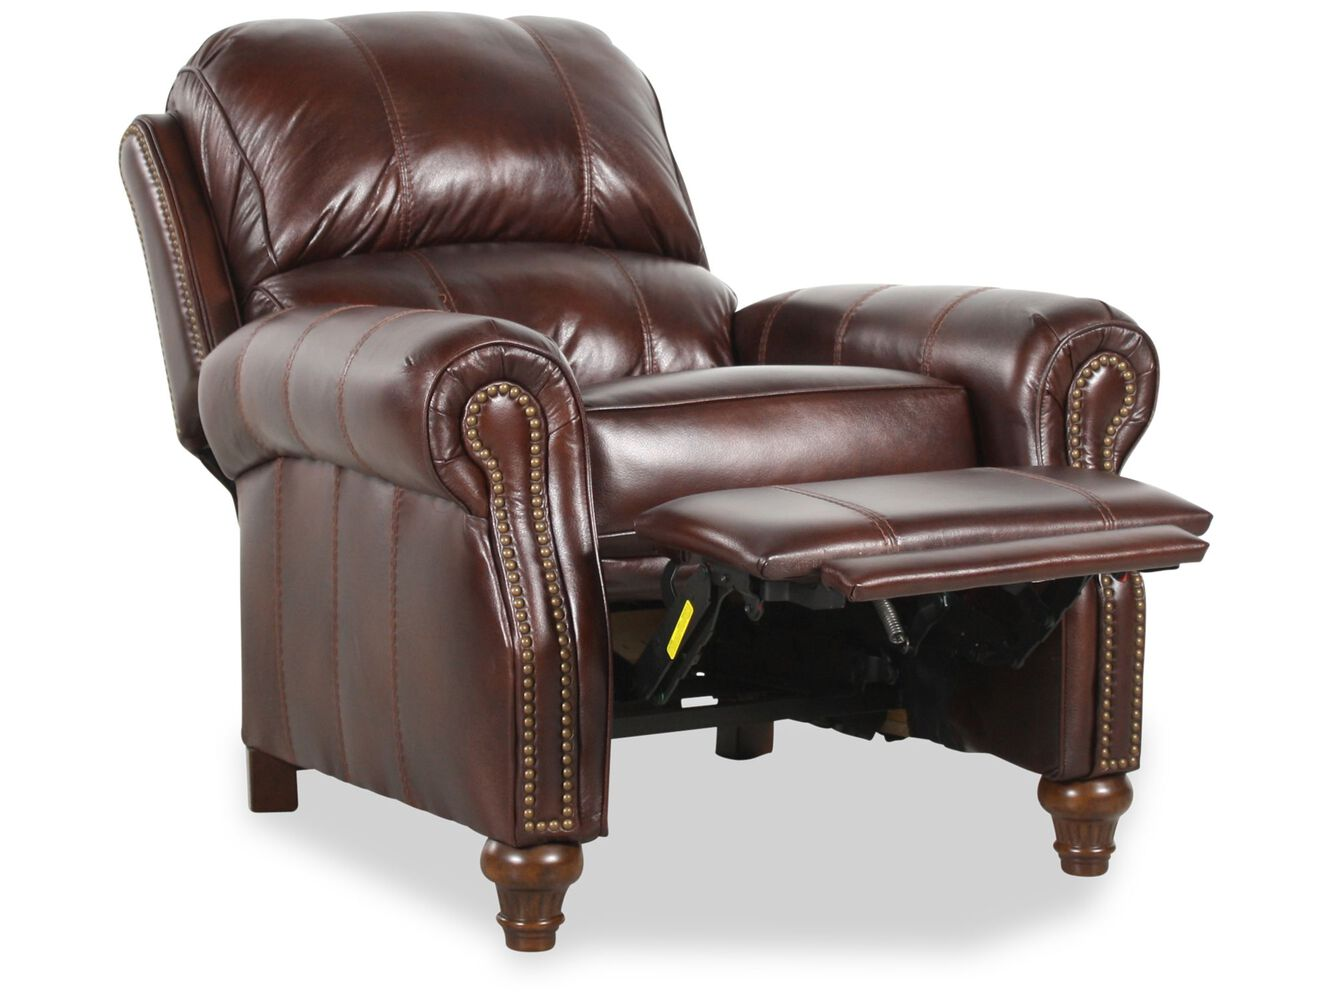 home ashley walworth today low garnet free leg garden shipping product recliner designs by overstock signature